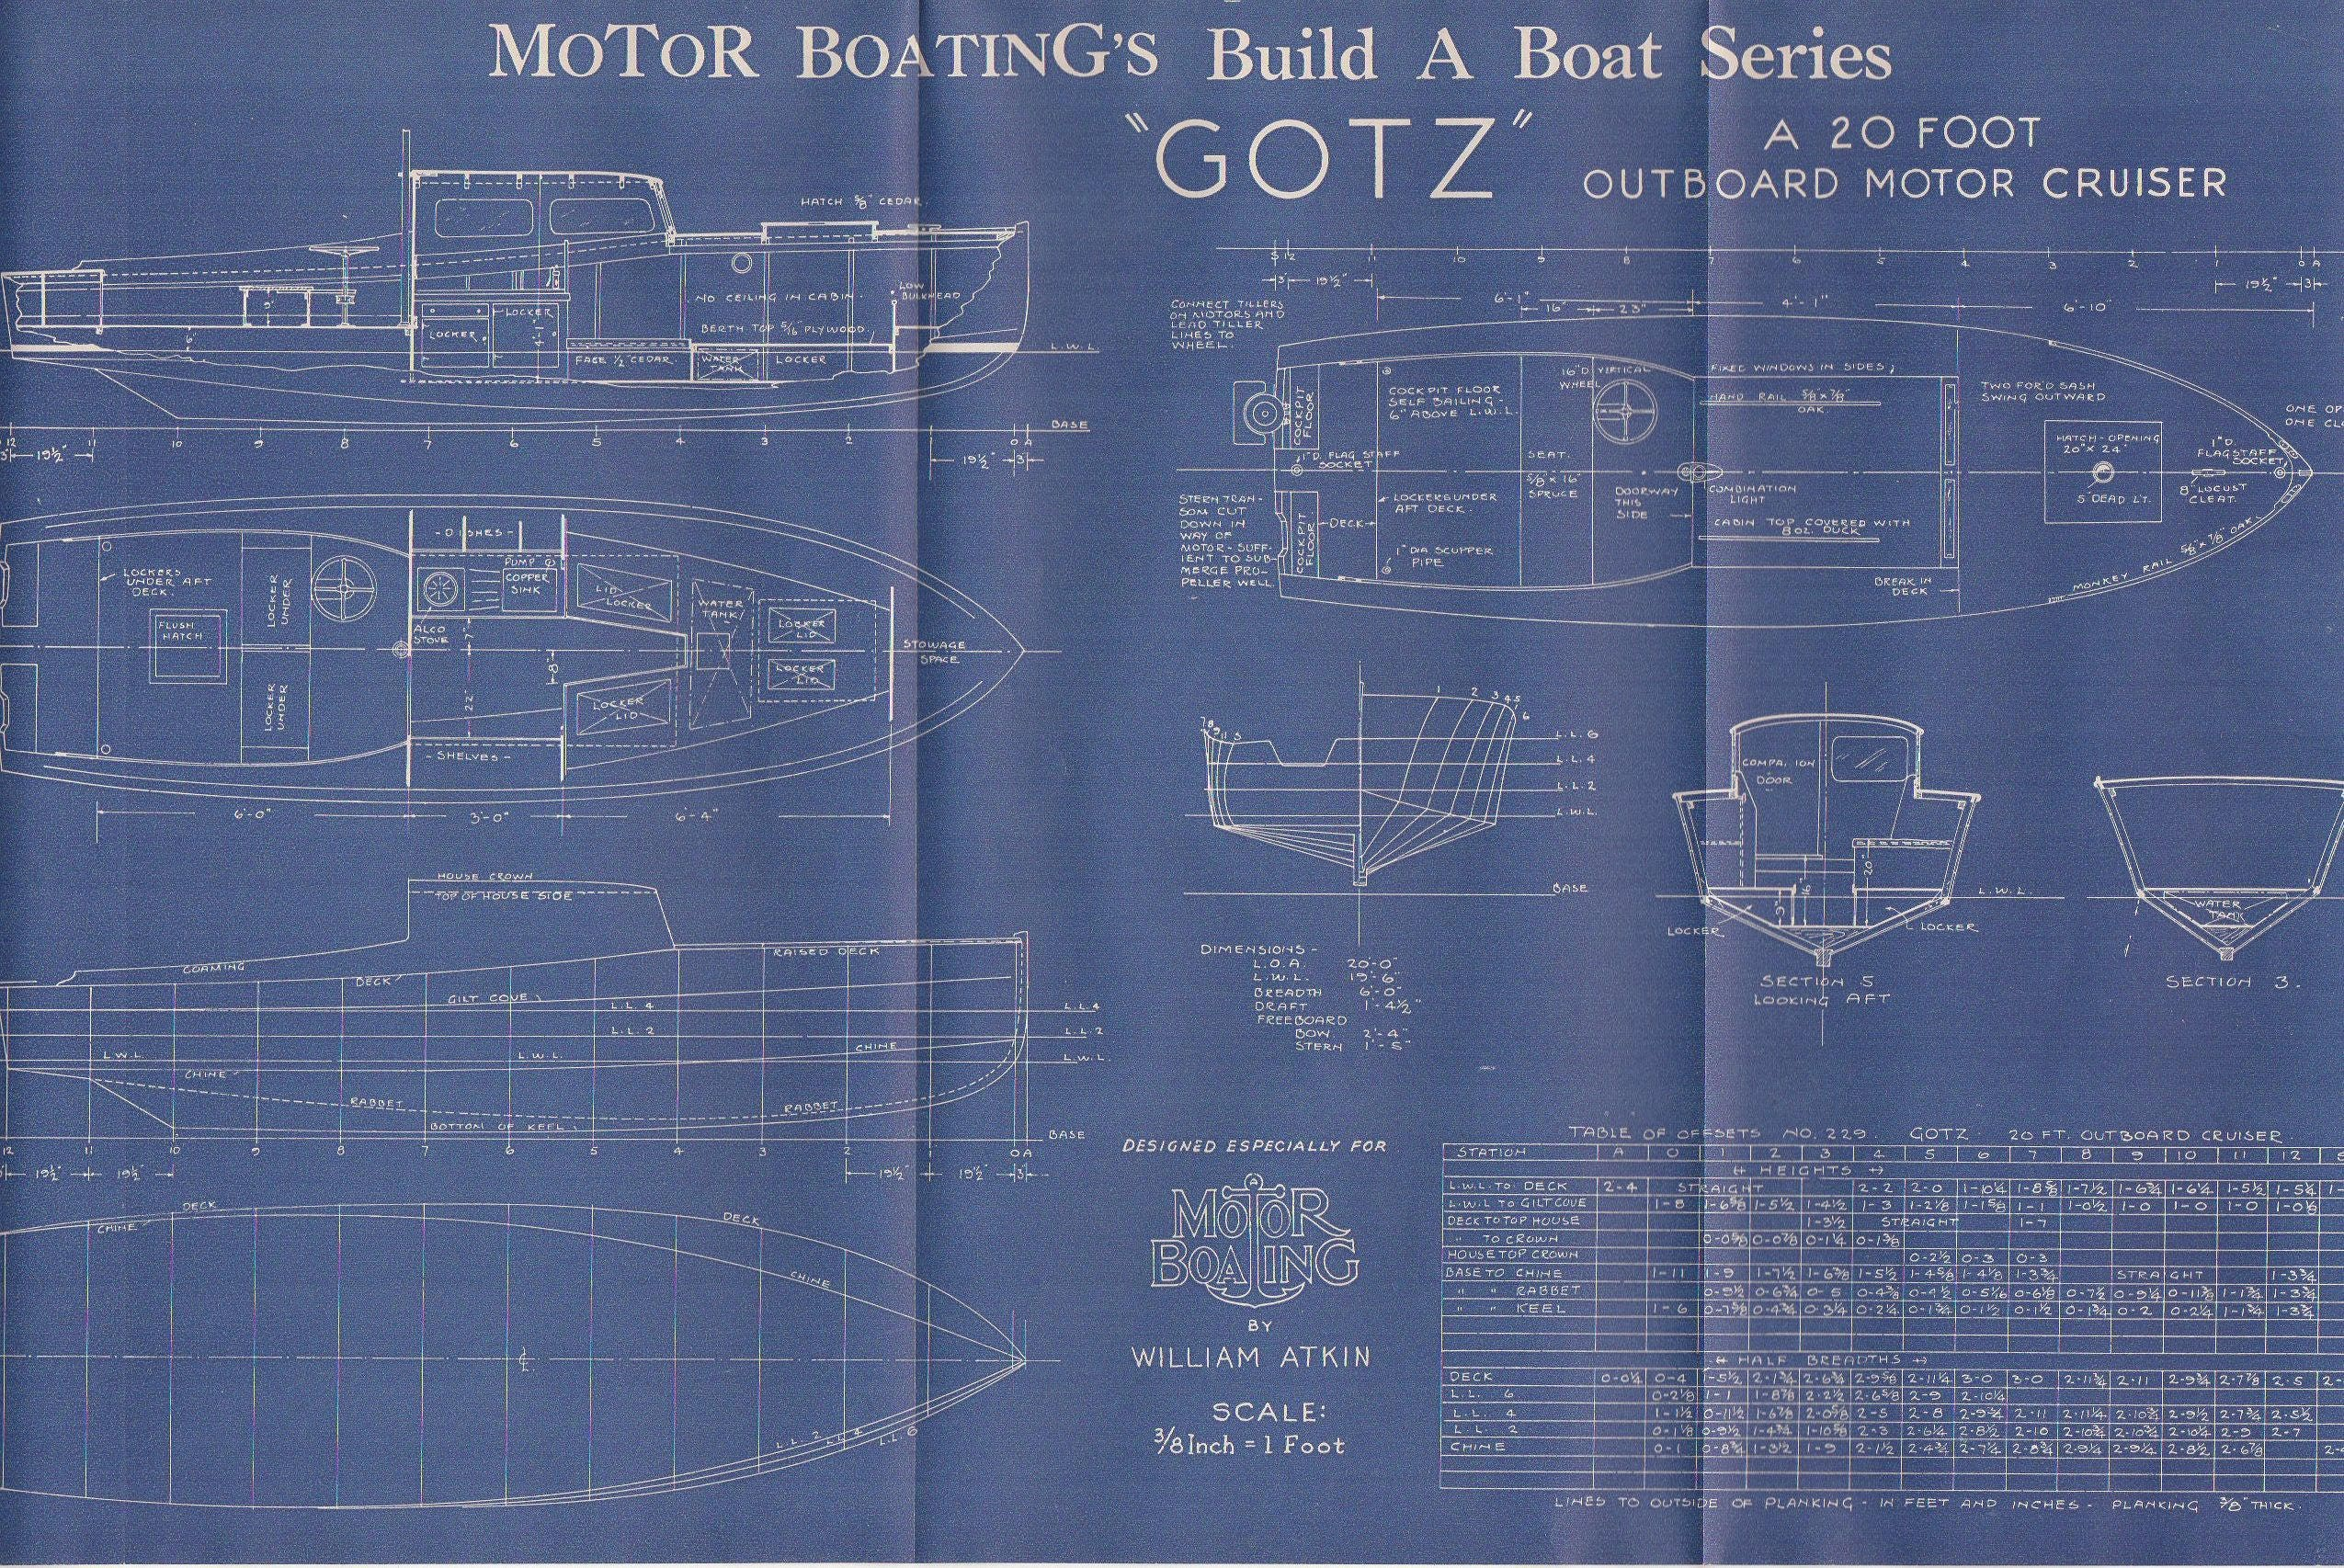 Vintage motor boat ship blueprint c1940s motor cruiser nautical art vintage motor boat ship blueprint c1940s motor cruiser nautical art urban industrial decor blue print blueprint art malvernweather Gallery